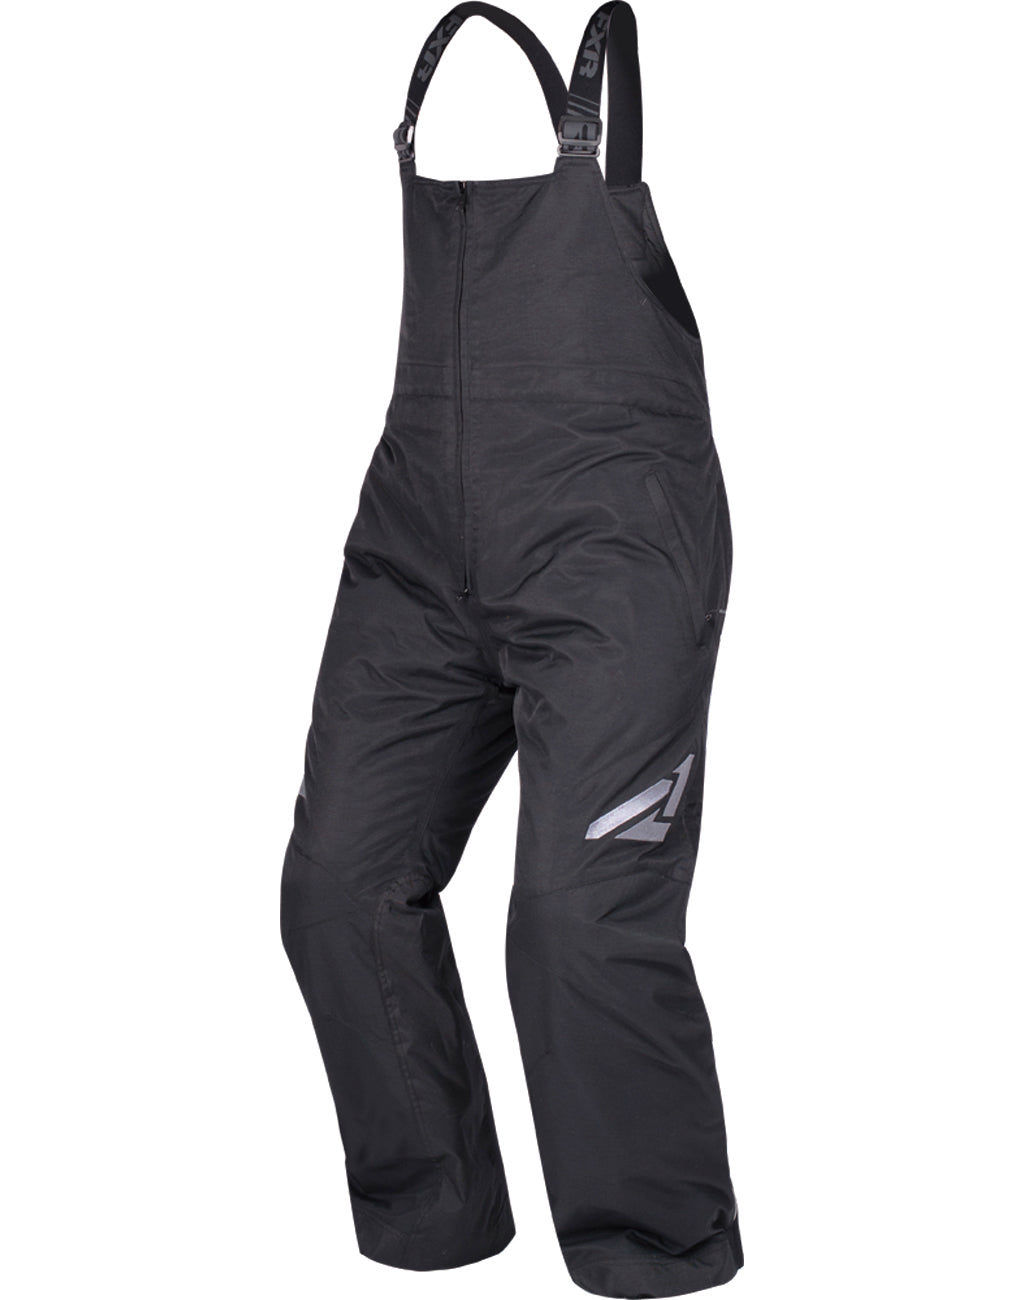 Men's FXR Fuel Bib Pant